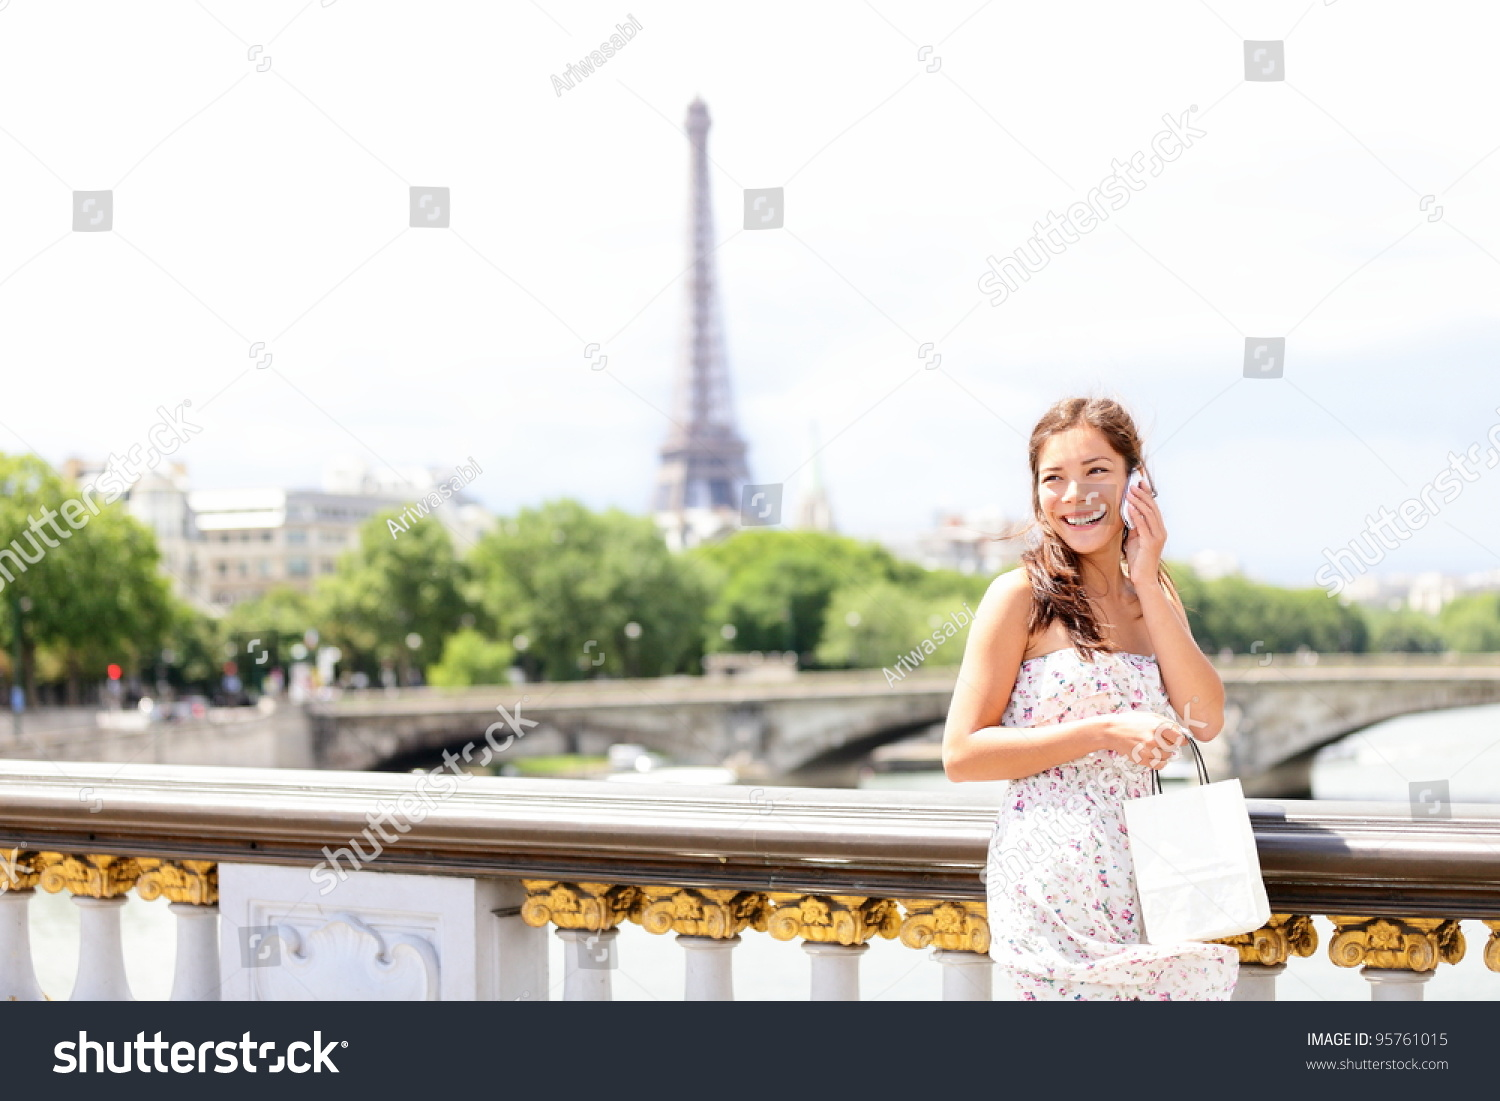 how to say mobile phone in french